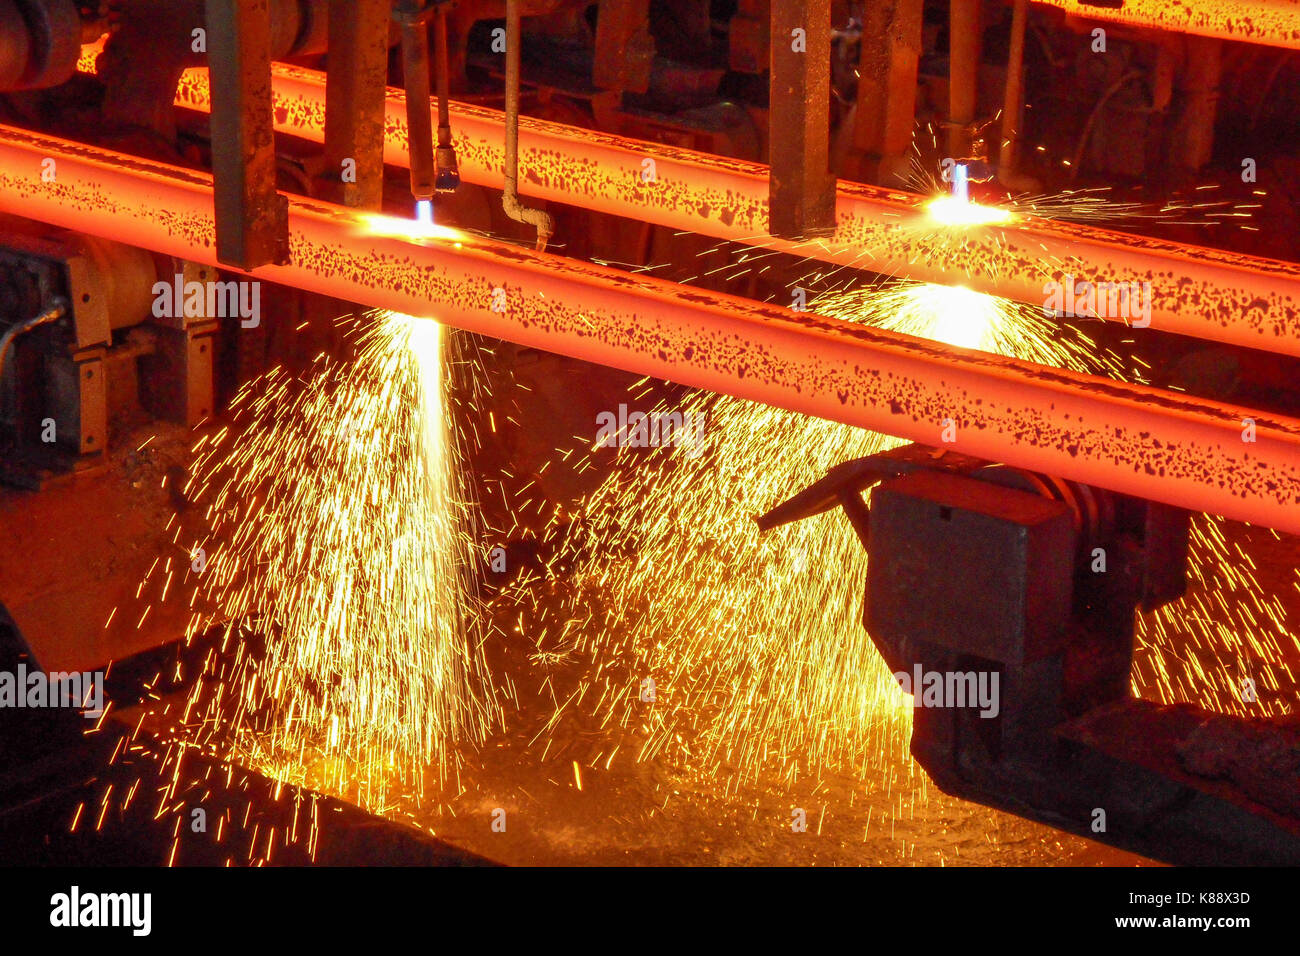 Steel billets in a continuous casting machine in a steel mill - Stock Image